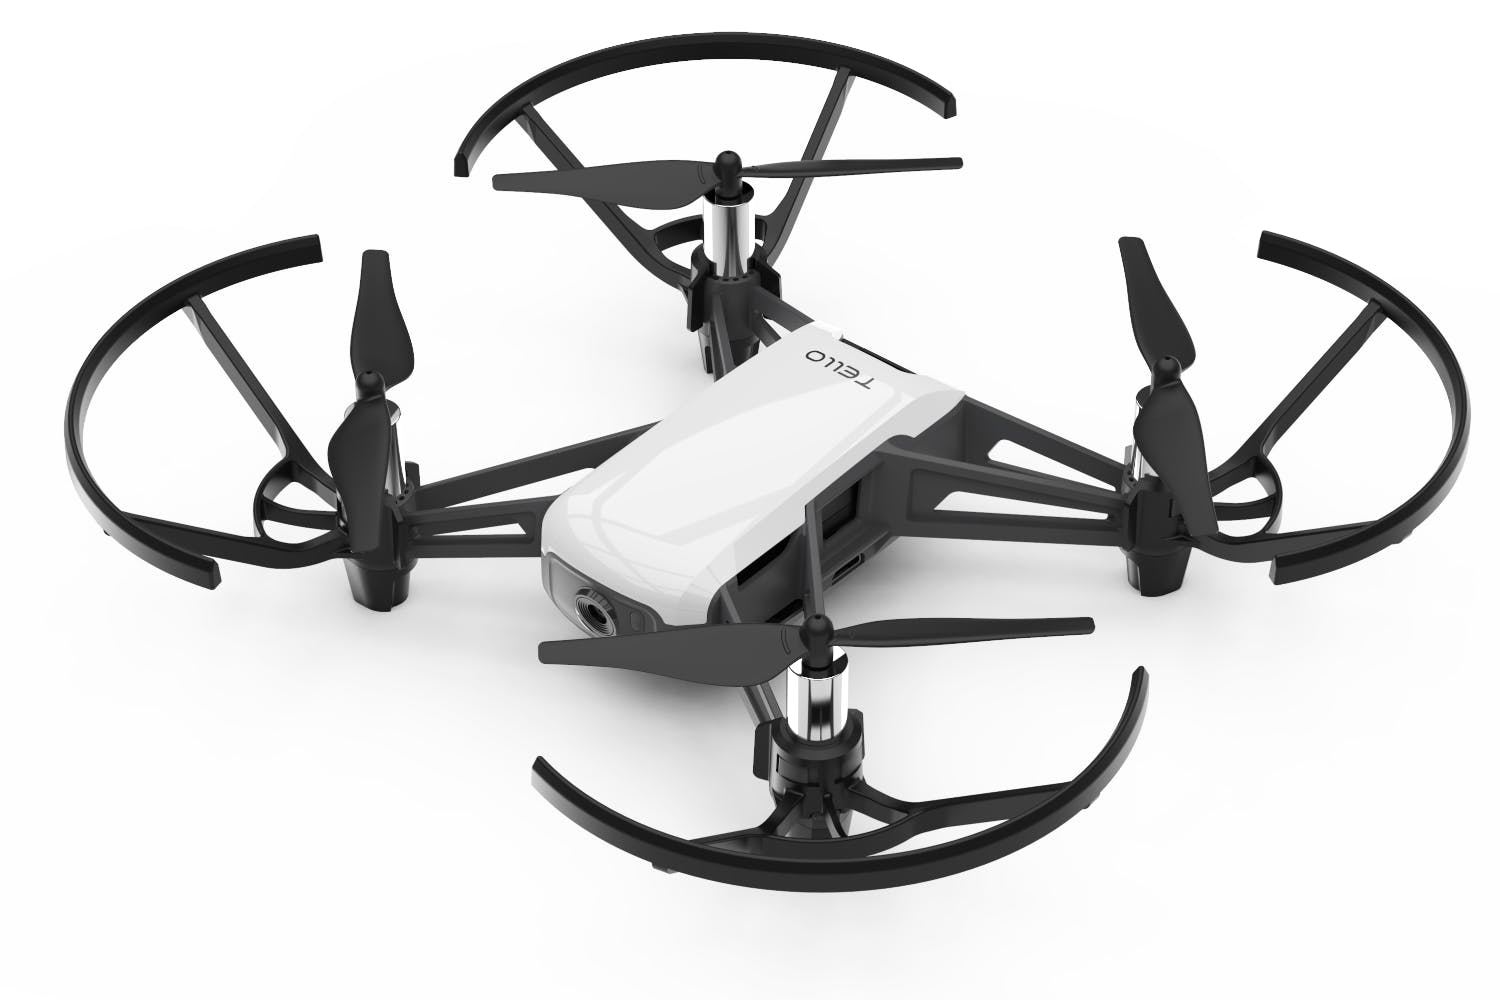 Programmable Tello EDU Drone,now available at Apple and DJI